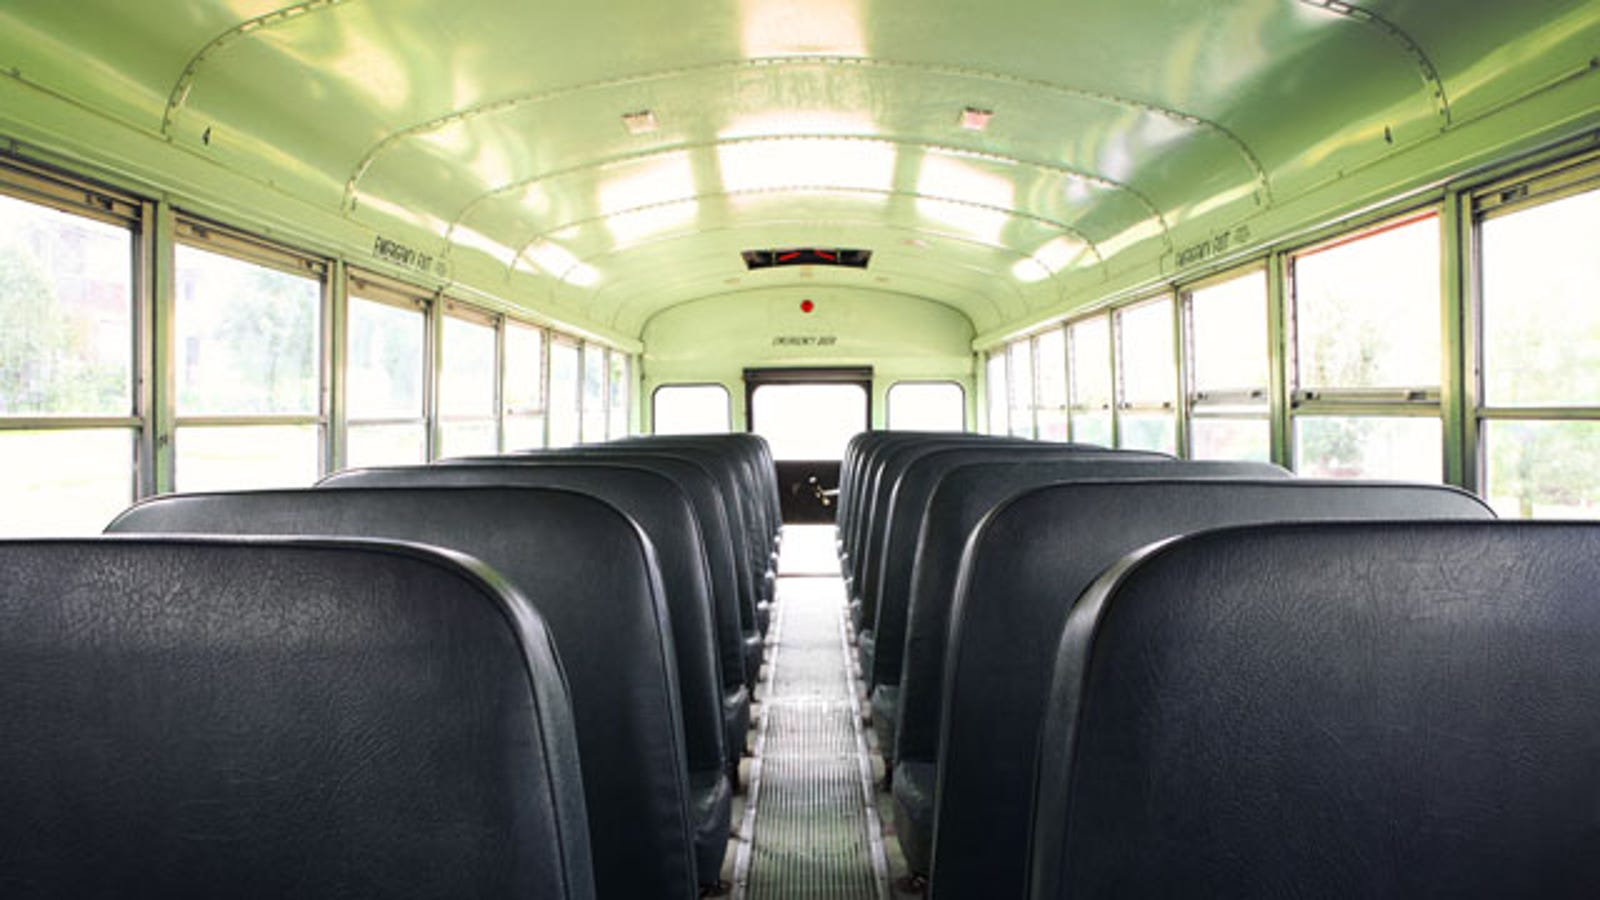 Eighth Grade Girl Punished After Witnessing School Bus Sex-5875